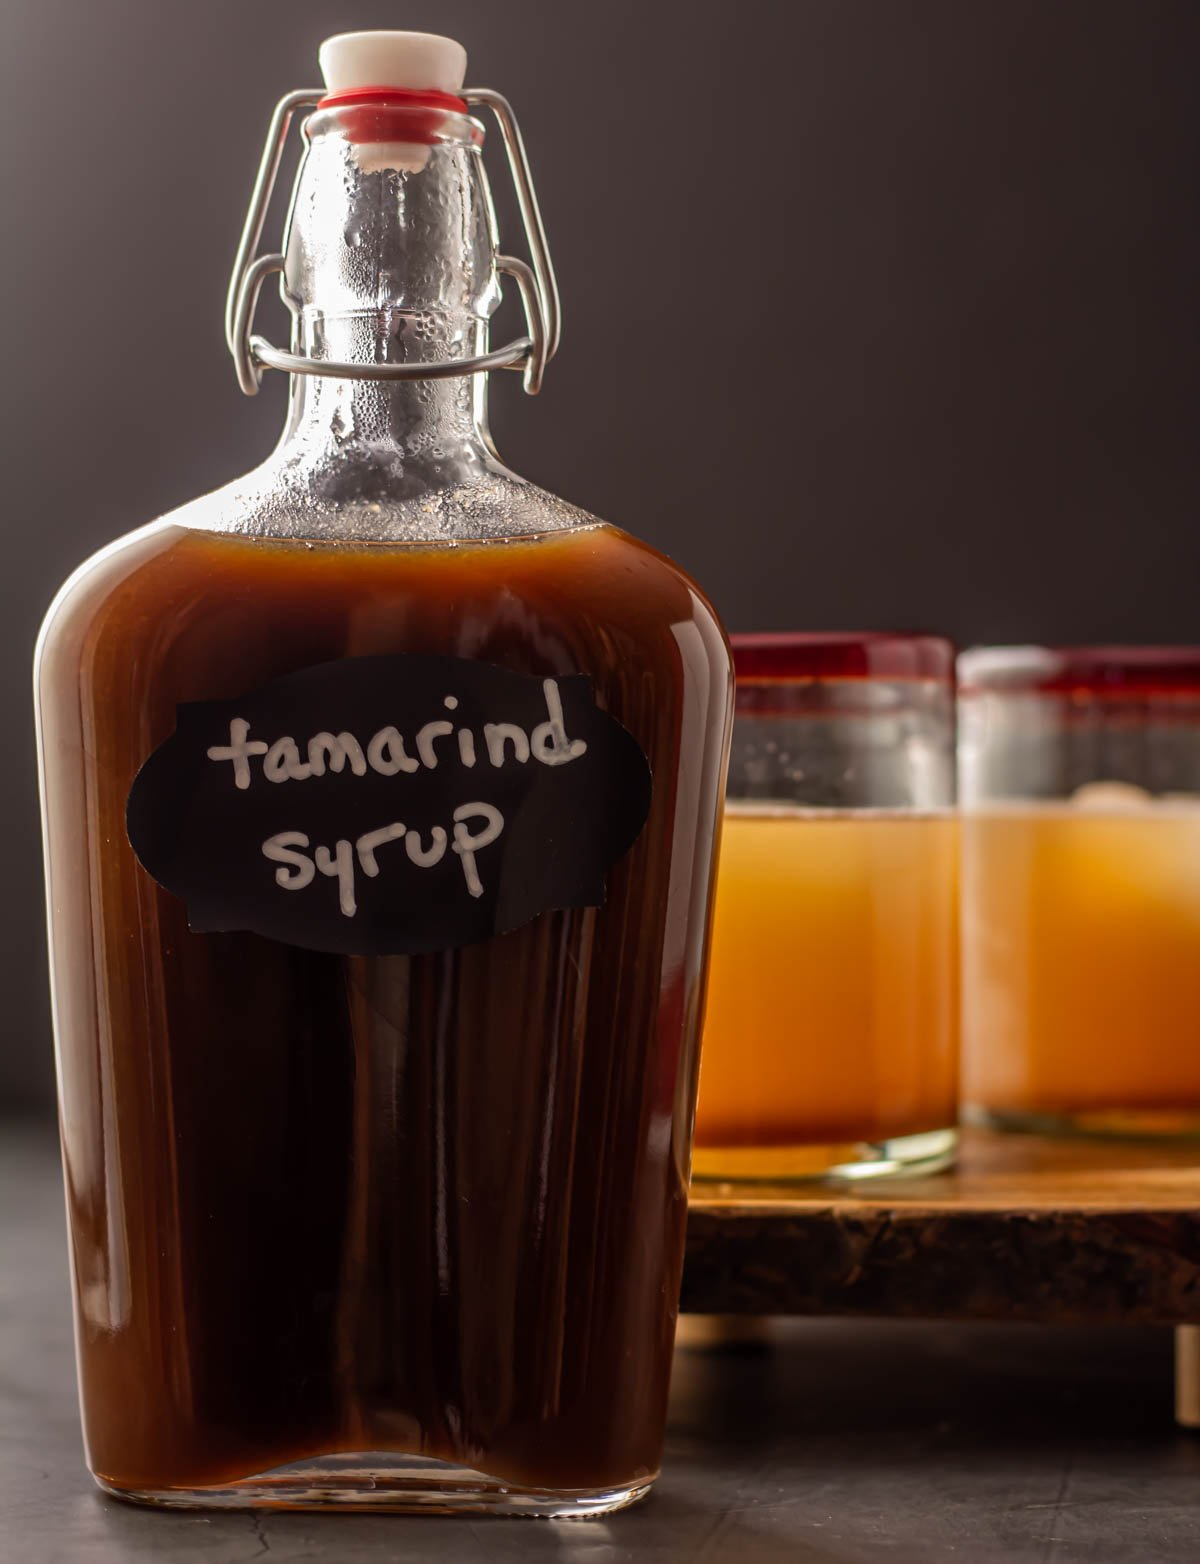 A glass bottle of tamarind syrup with 2 mezcal mules in the background.